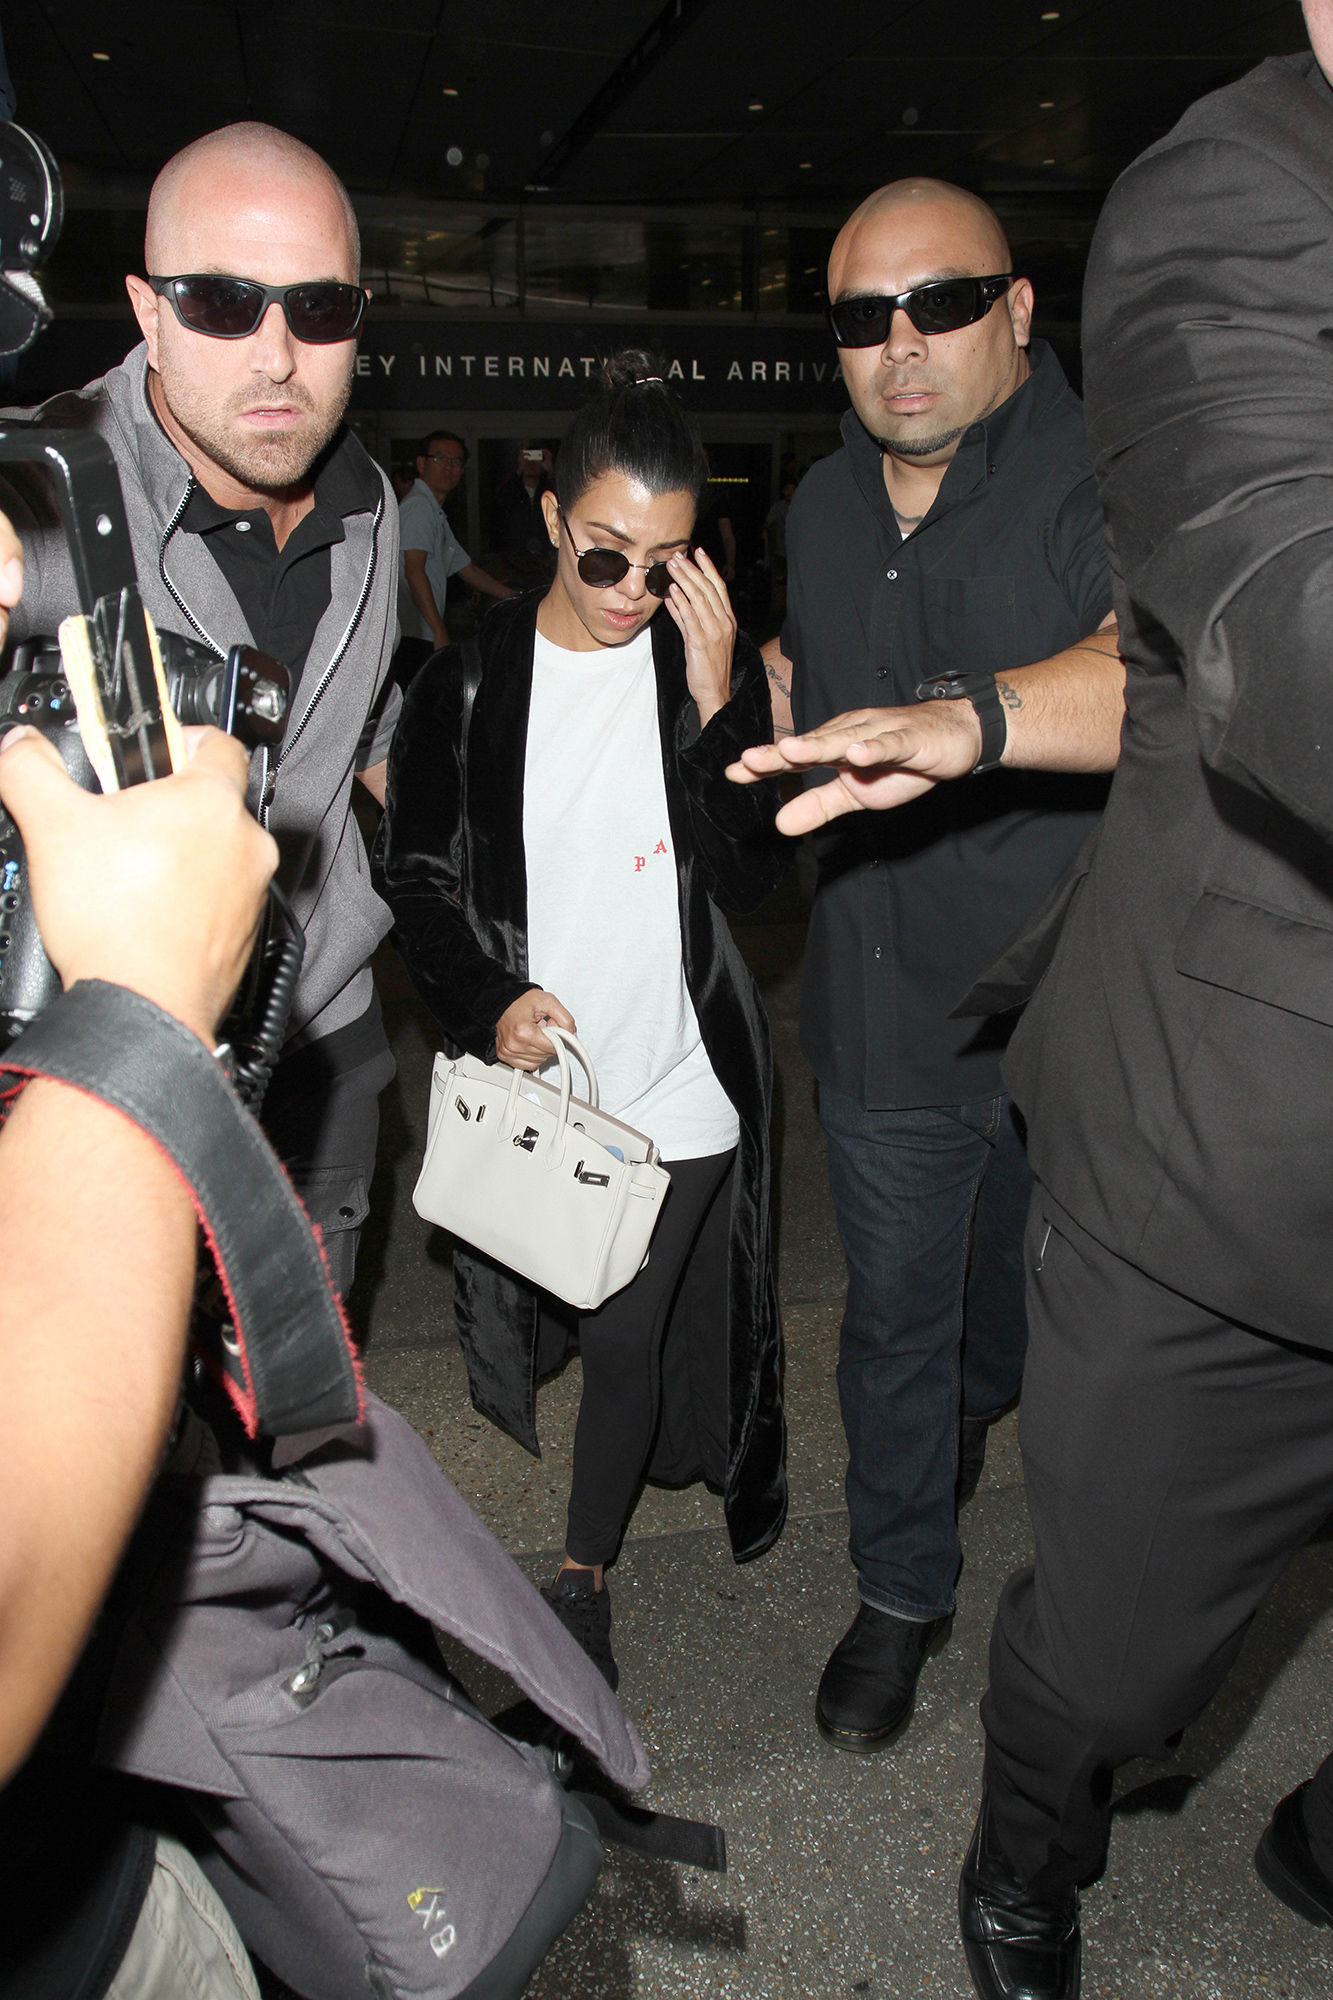 Kourtney Kardashian is flanked by several huge bodyguards as she arrives in Los Angeles on the heels of her sister, Kim reportedly being robbed at gunpoint in Paris. The KUWTK star was seen at LAX with her bodyguards.